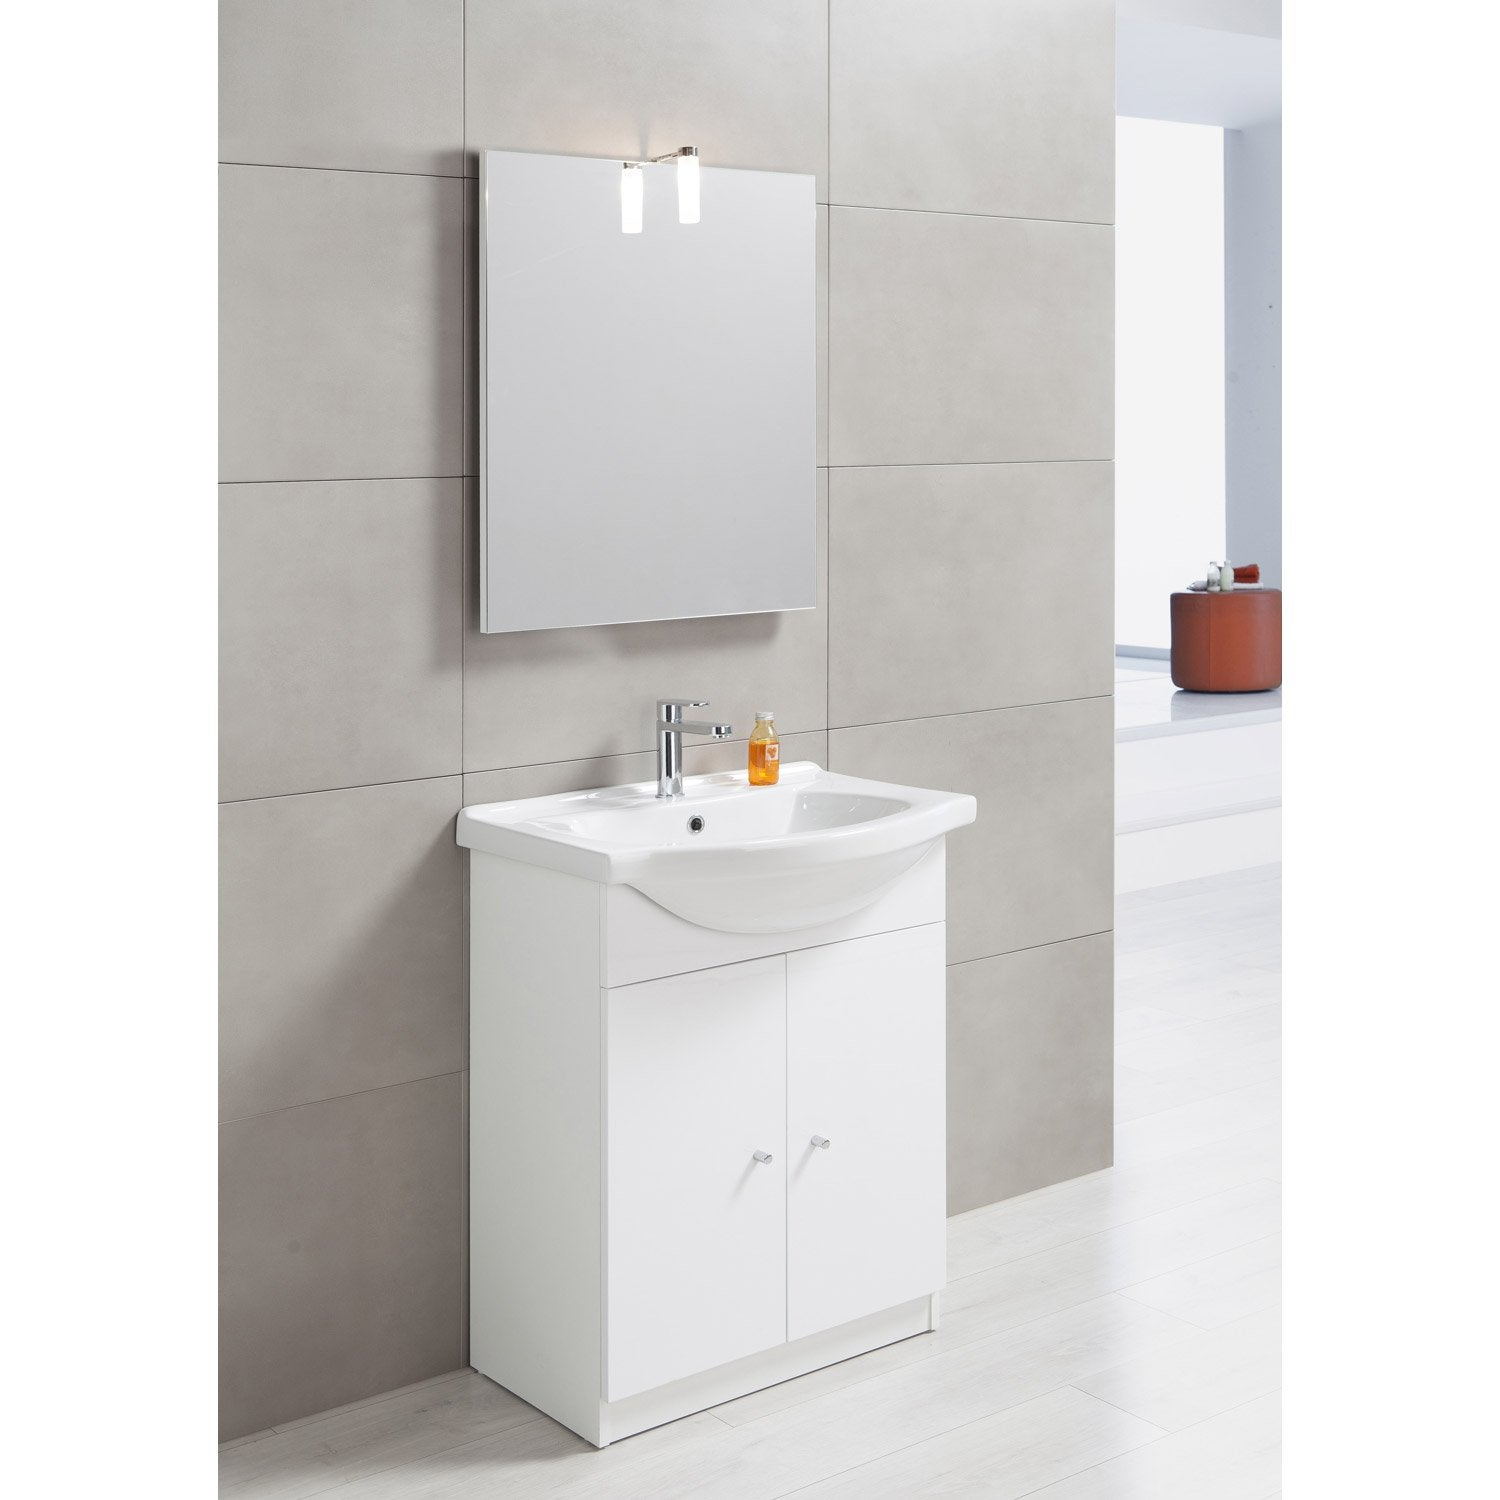 Meuble vasque 65 cm blanc bianca leroy merlin for Meuble salle de bain vasque a poser leroy merlin